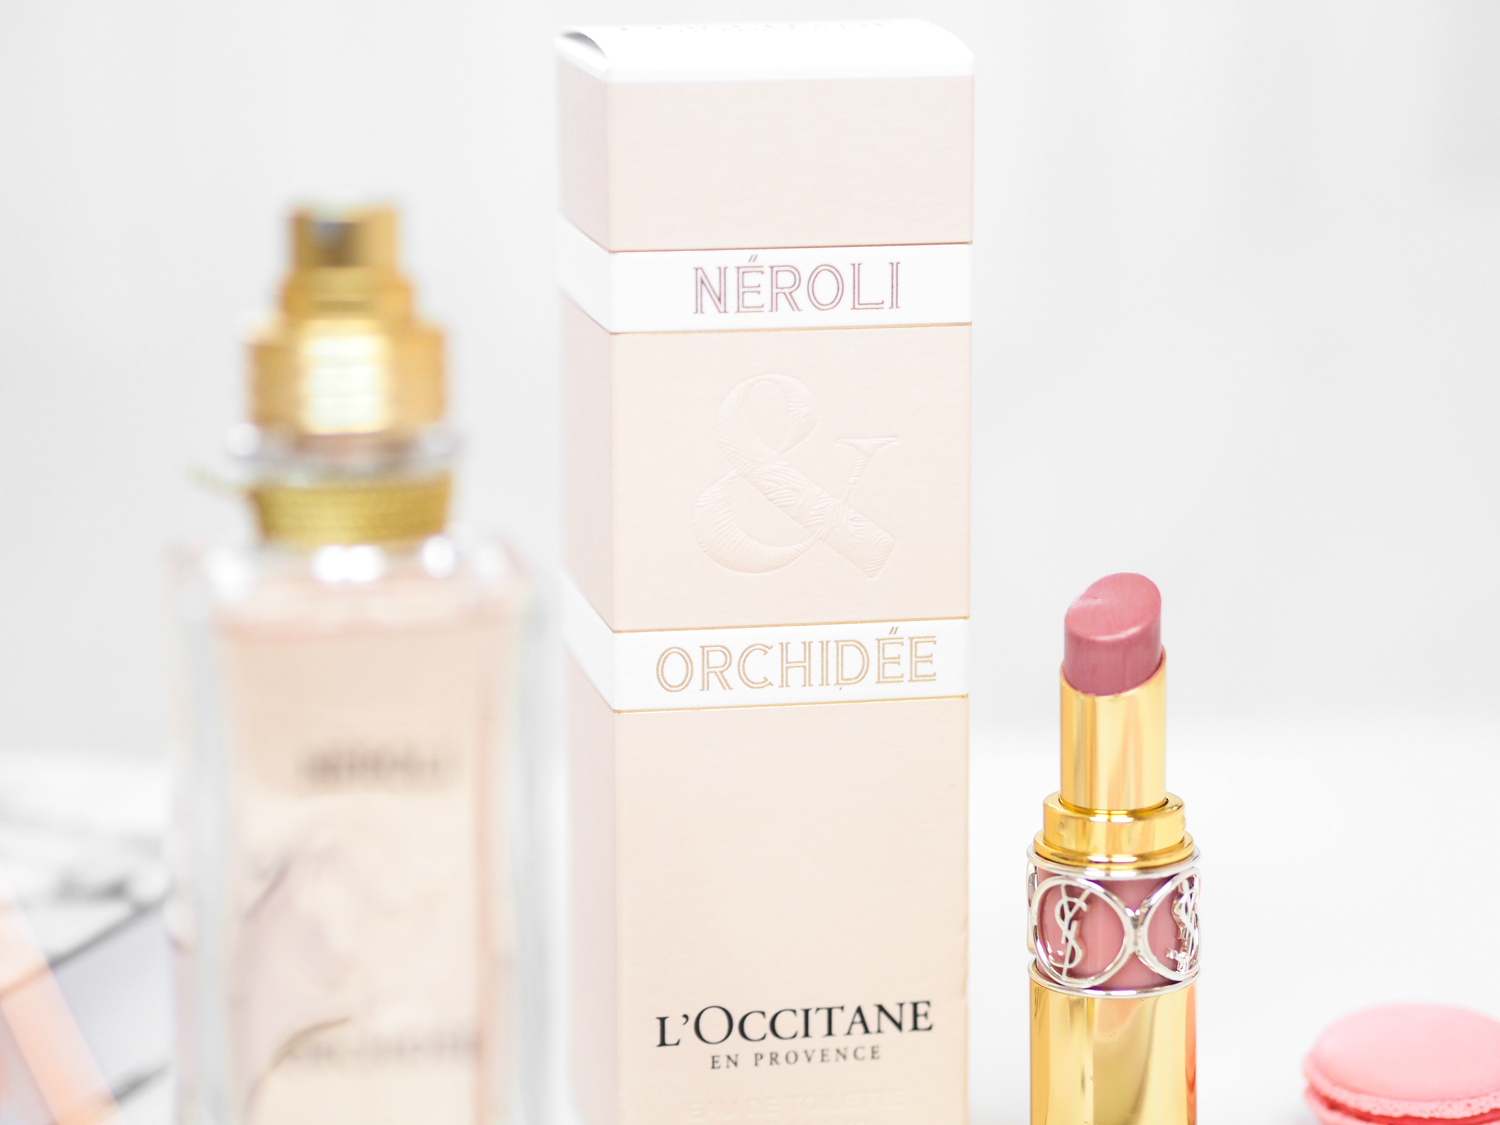 L'Occitane Néroli & Orchidée Review